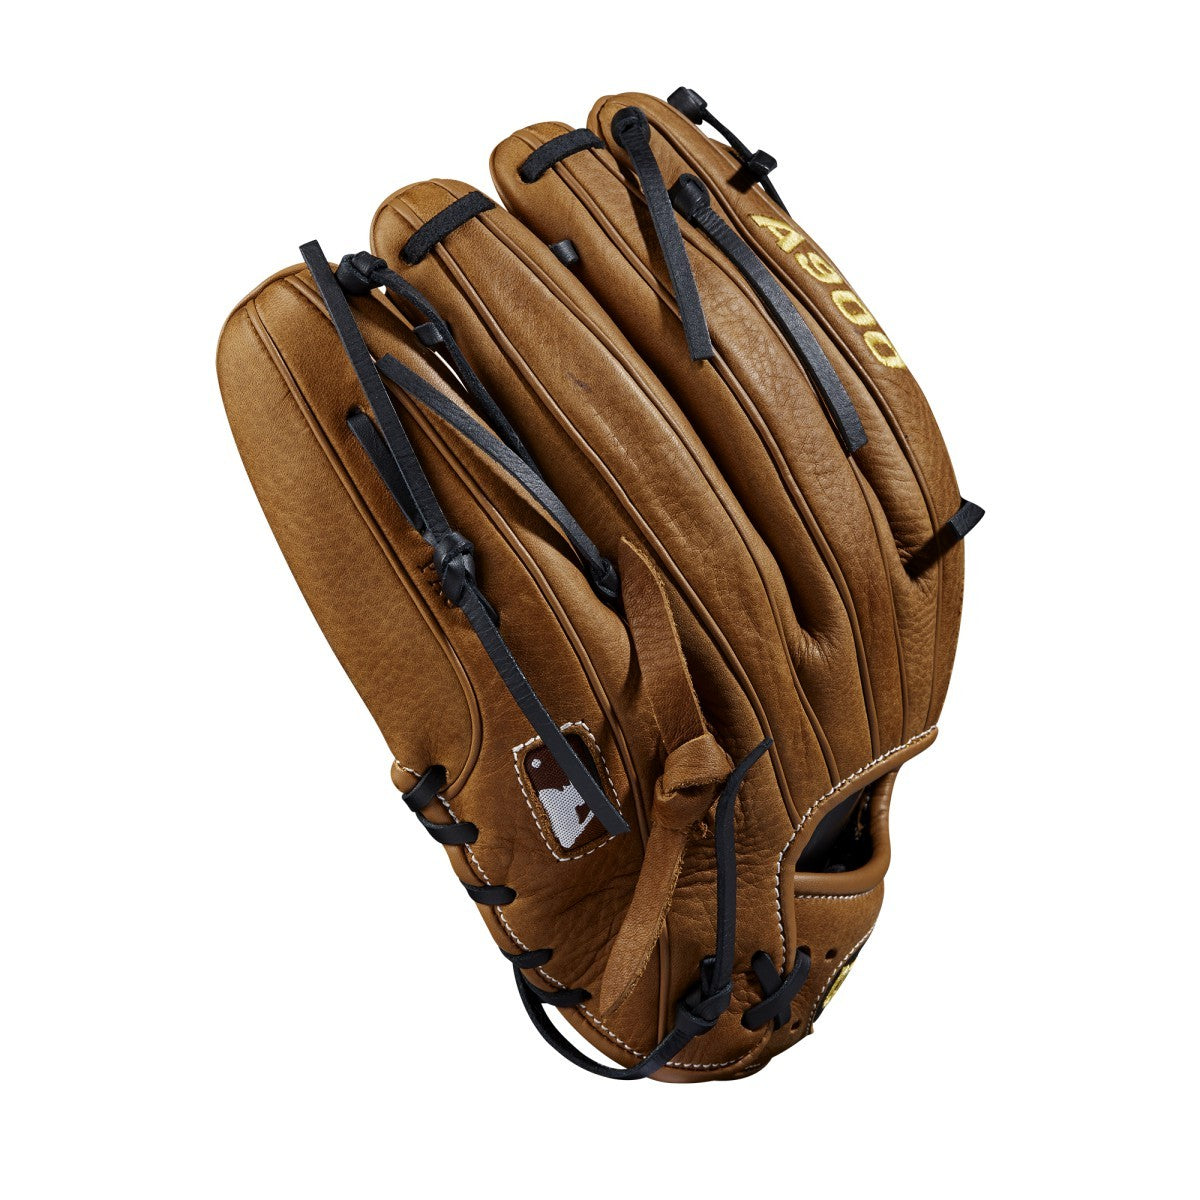 Leather Right-handed All Positions Wilson Baseball Gloves WILSON A900